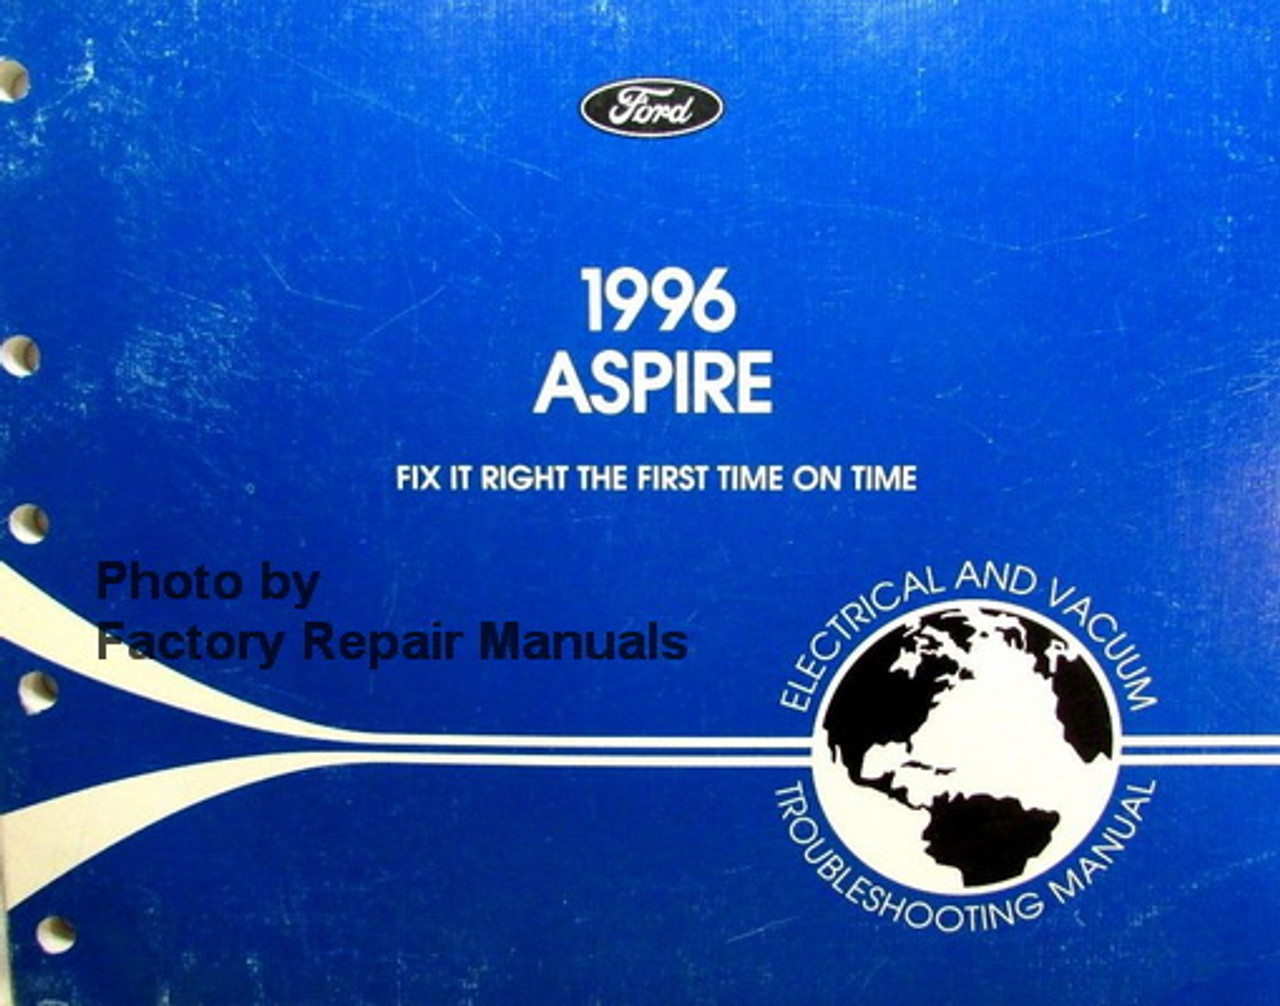 1994 ford aspire wiring diagram 1996 ford aspire electrical troubleshooting   vacuum manual wiring  ford aspire electrical troubleshooting